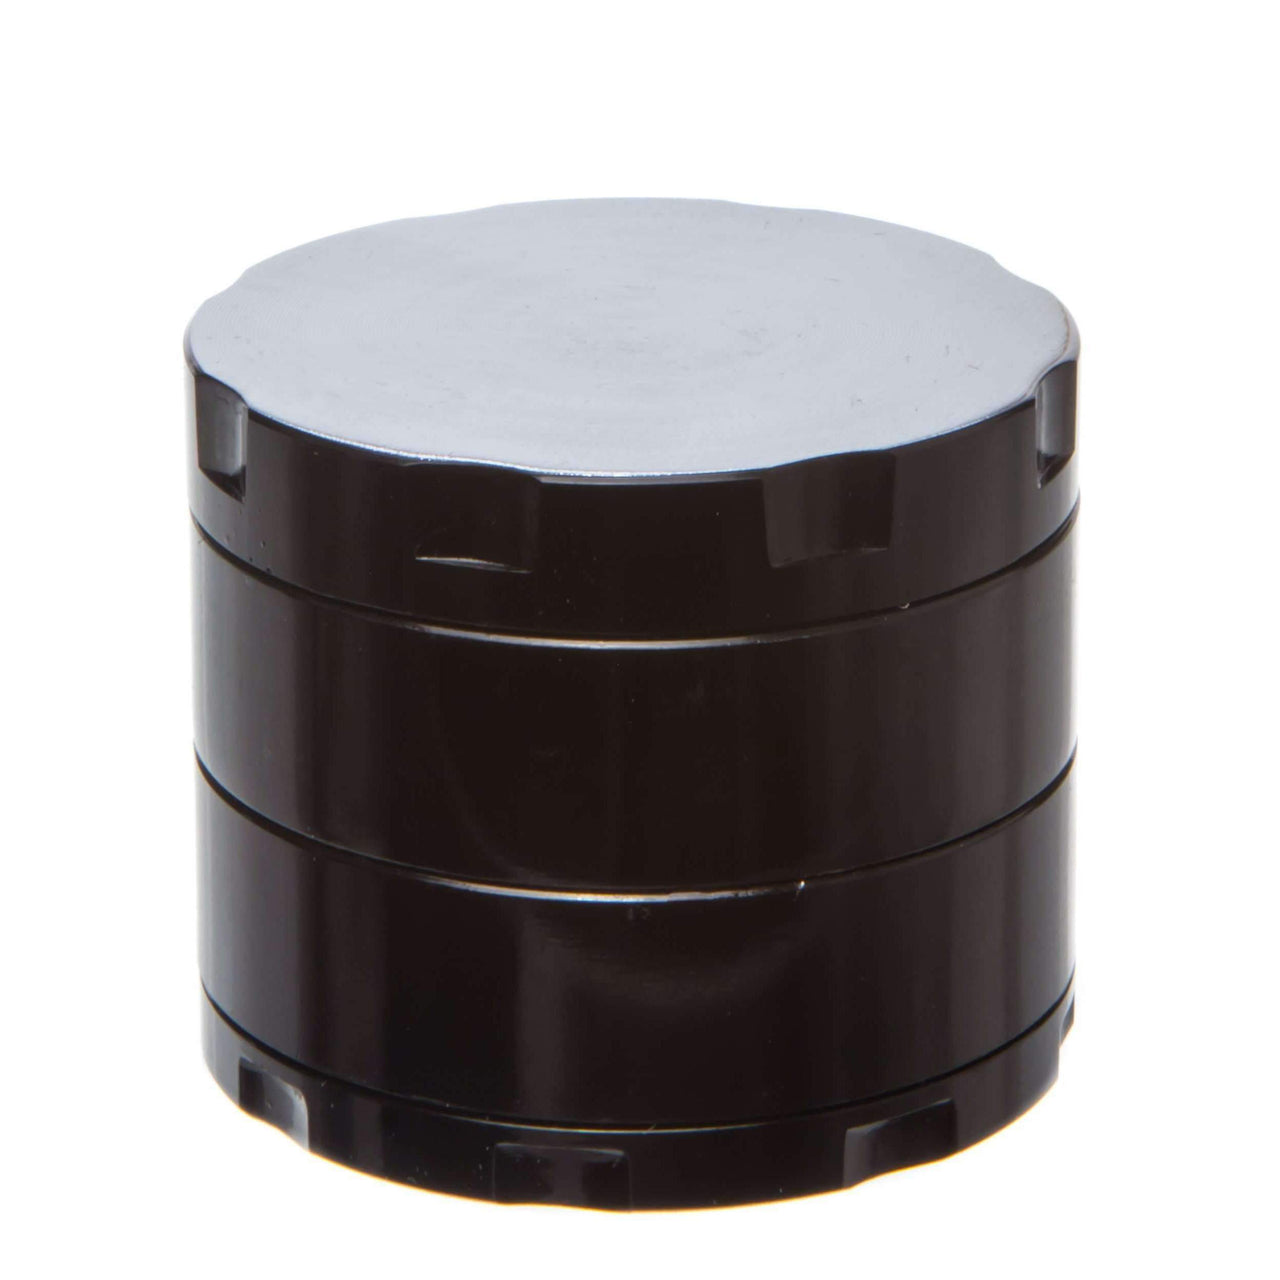 Four Piece Aluminum Herb Grinder - Black | The710Source.com